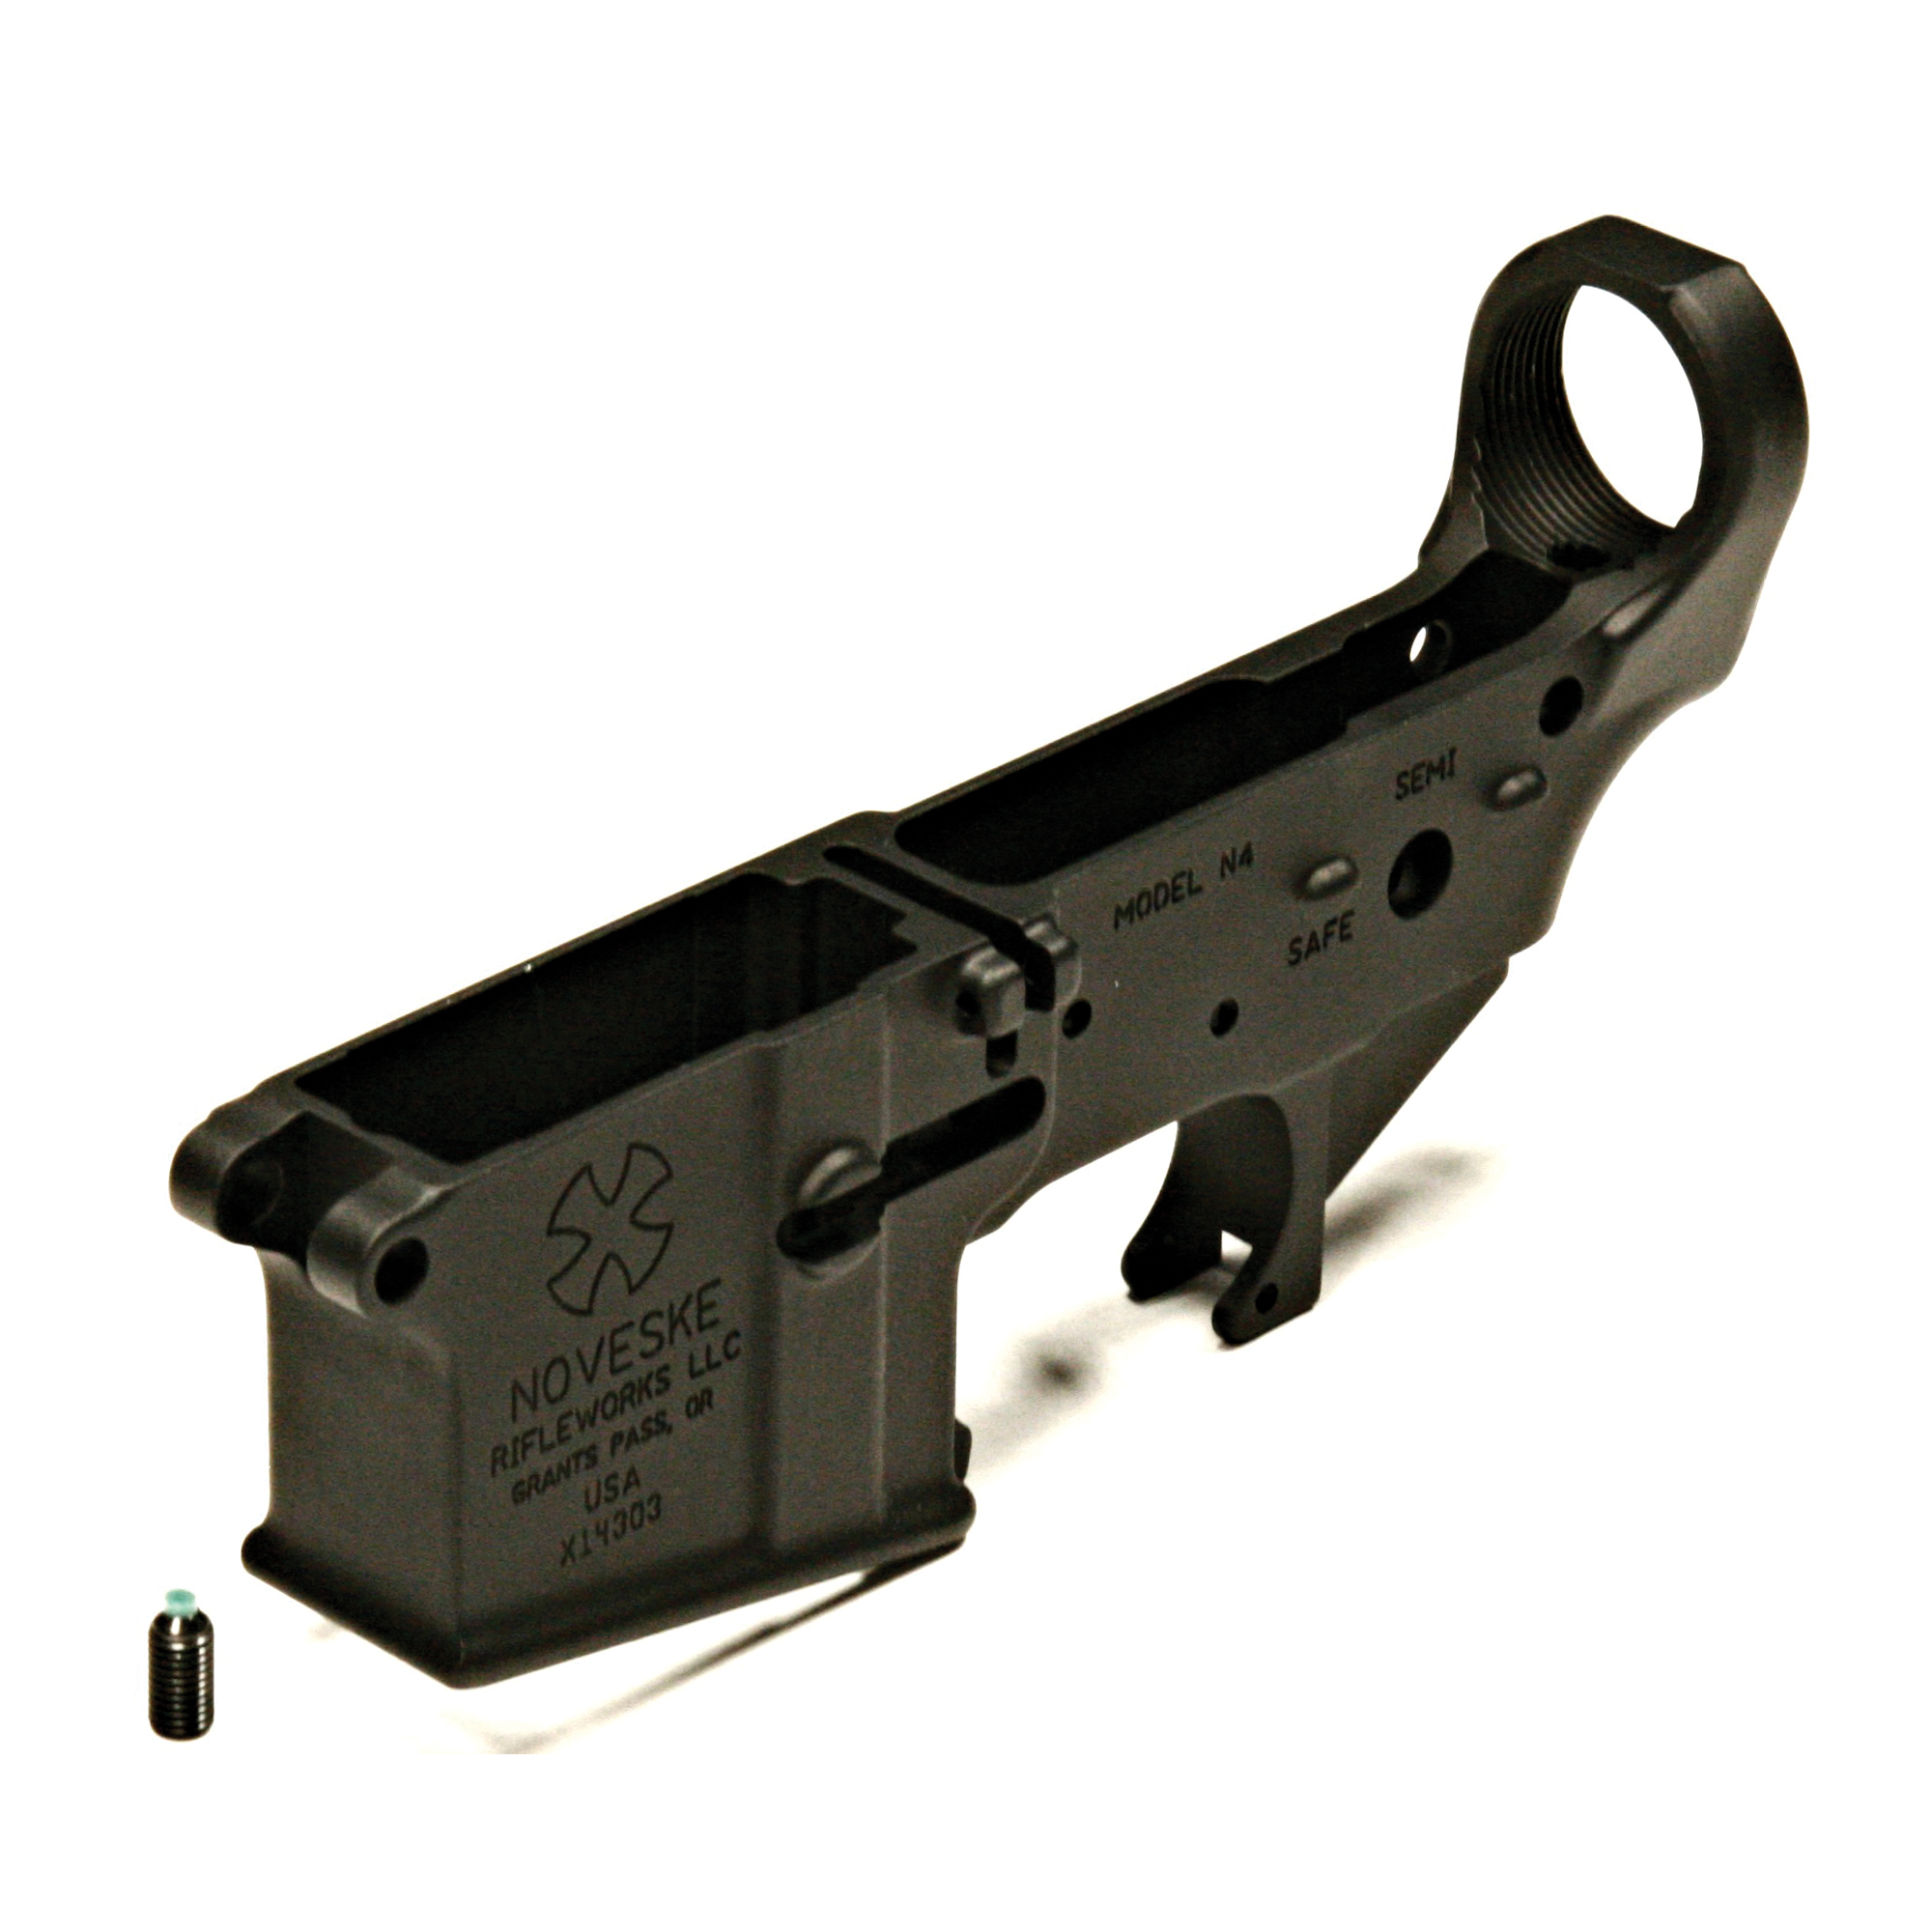 The Noveske Gen1 lower receiver is constructed of forged aluminum. It is compatible with all Mil-Spec AR-15 parts and accessories and is precision machined and finished by hand.